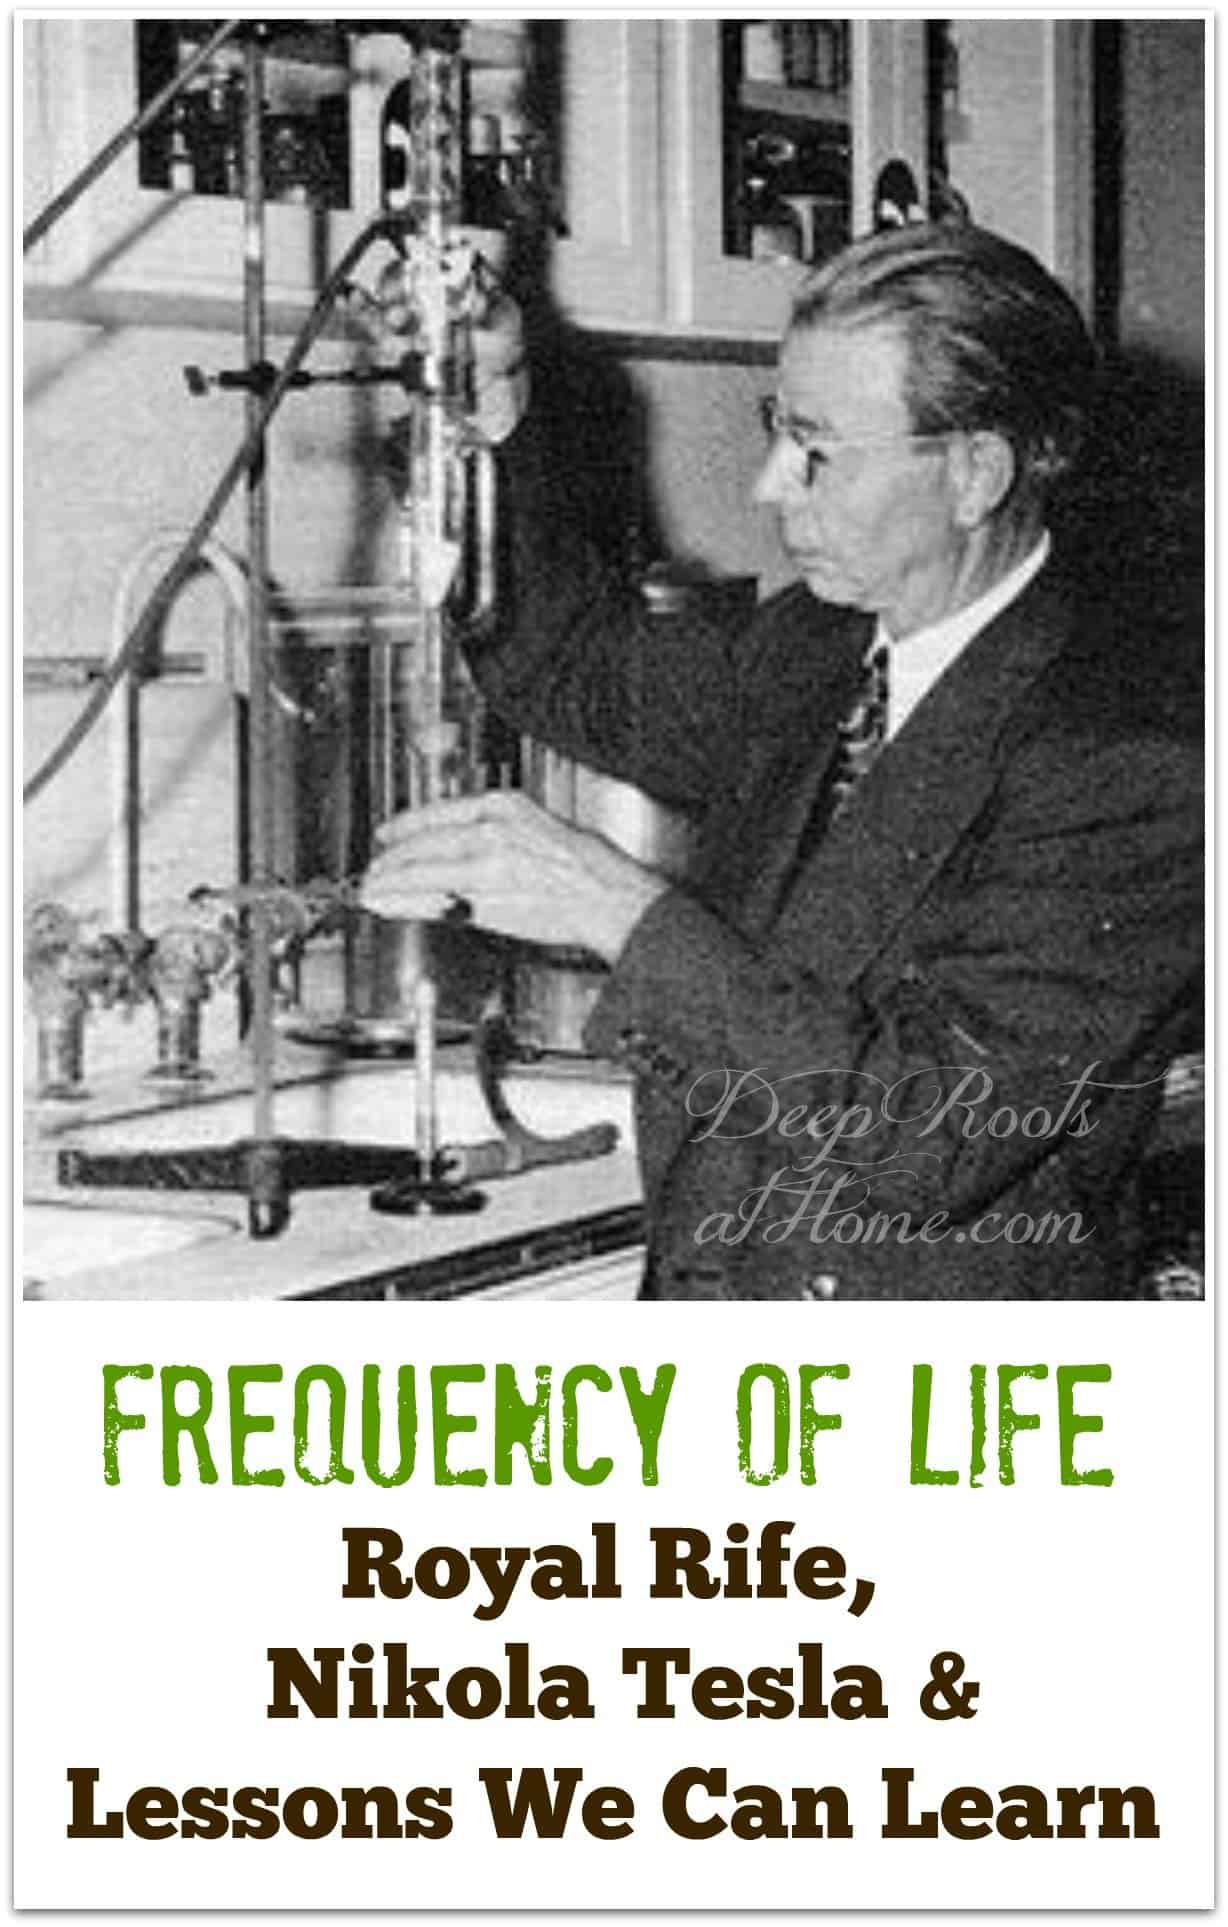 Frequency of Life: Royal Rife, Nikola Tesla & Lessons We Can Learn. Royal Rife building his machine